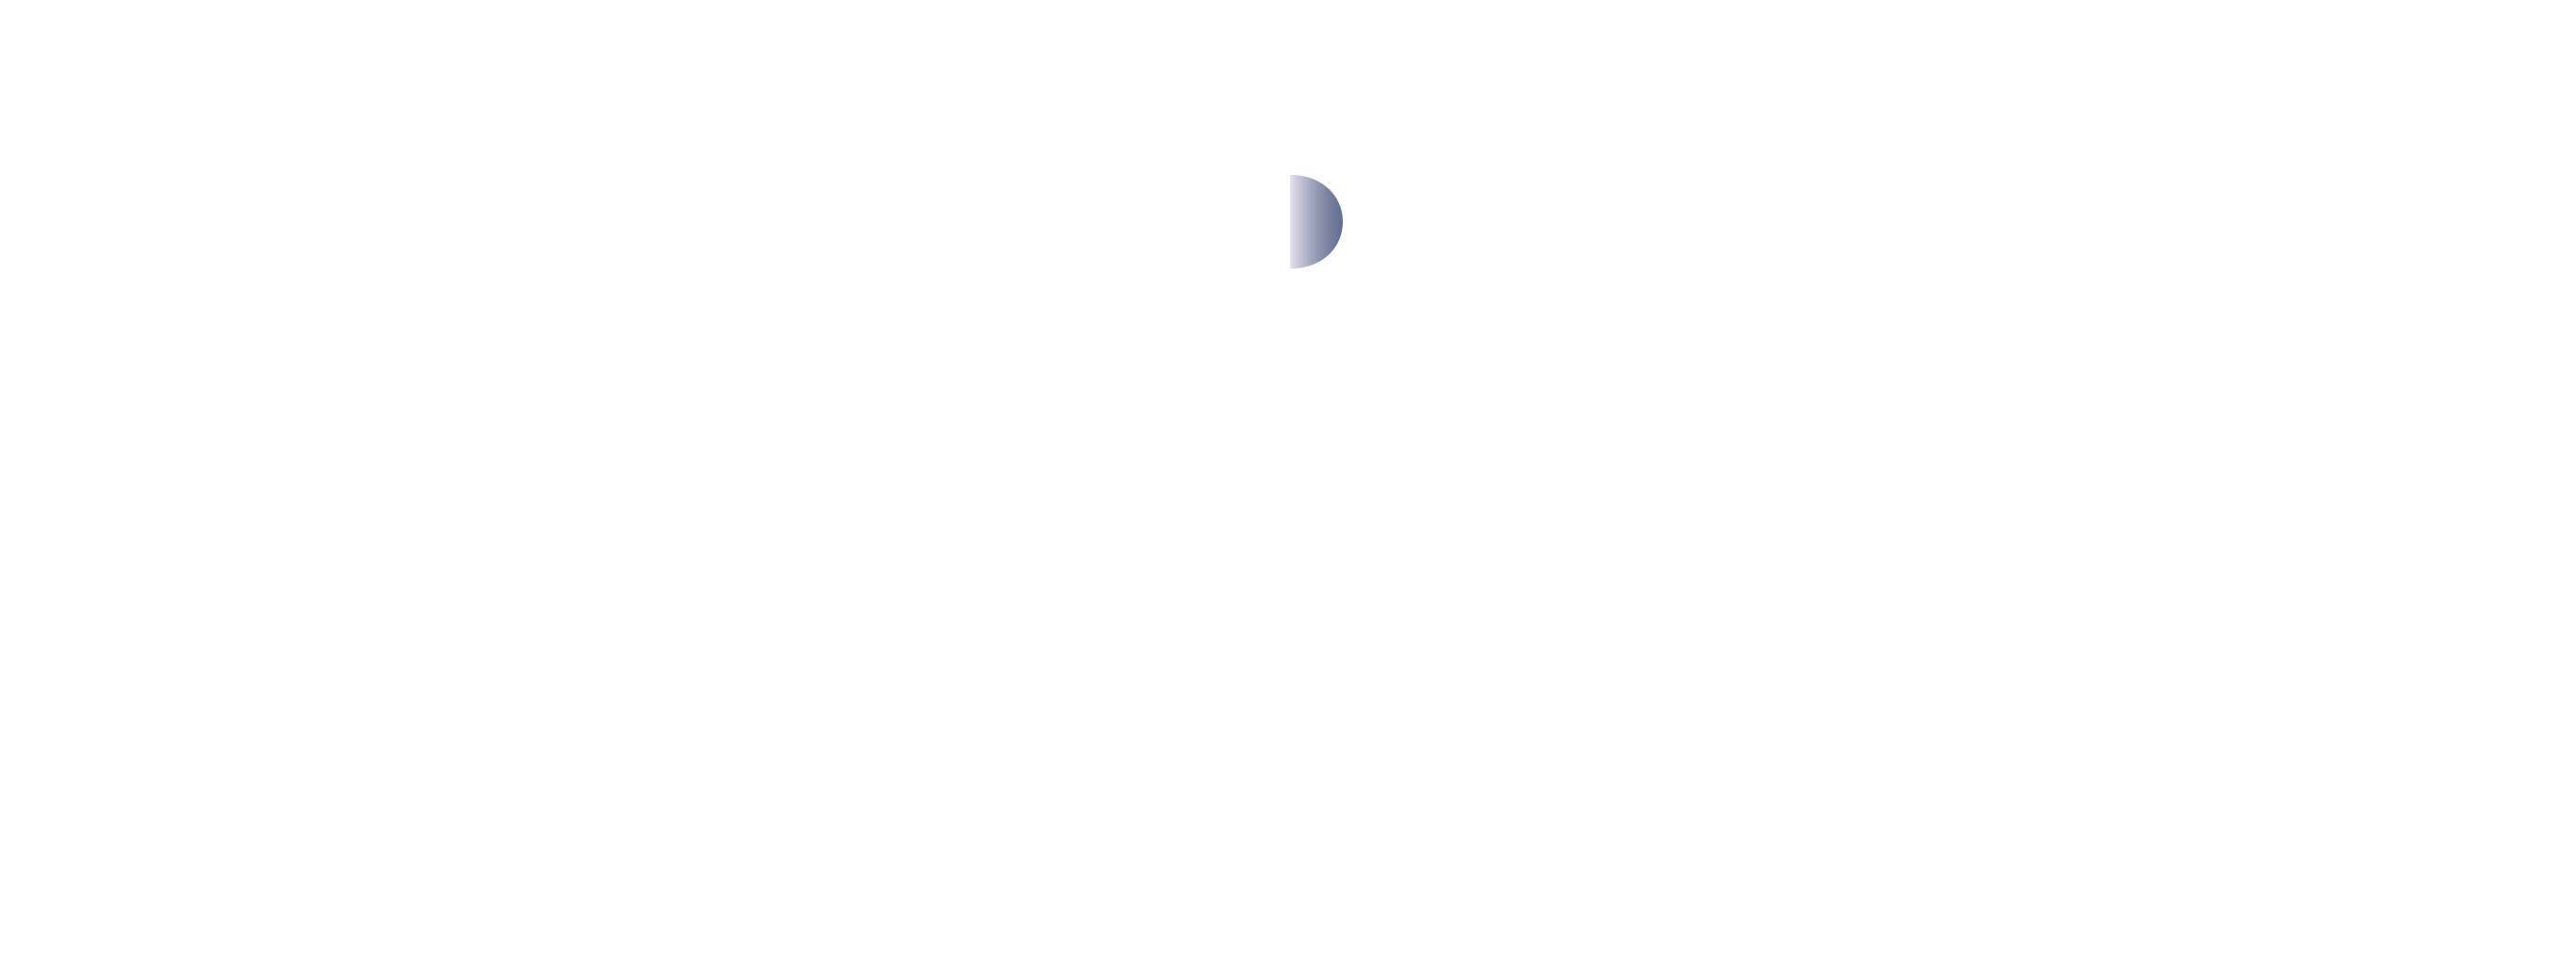 Granite Pointe Eye Care